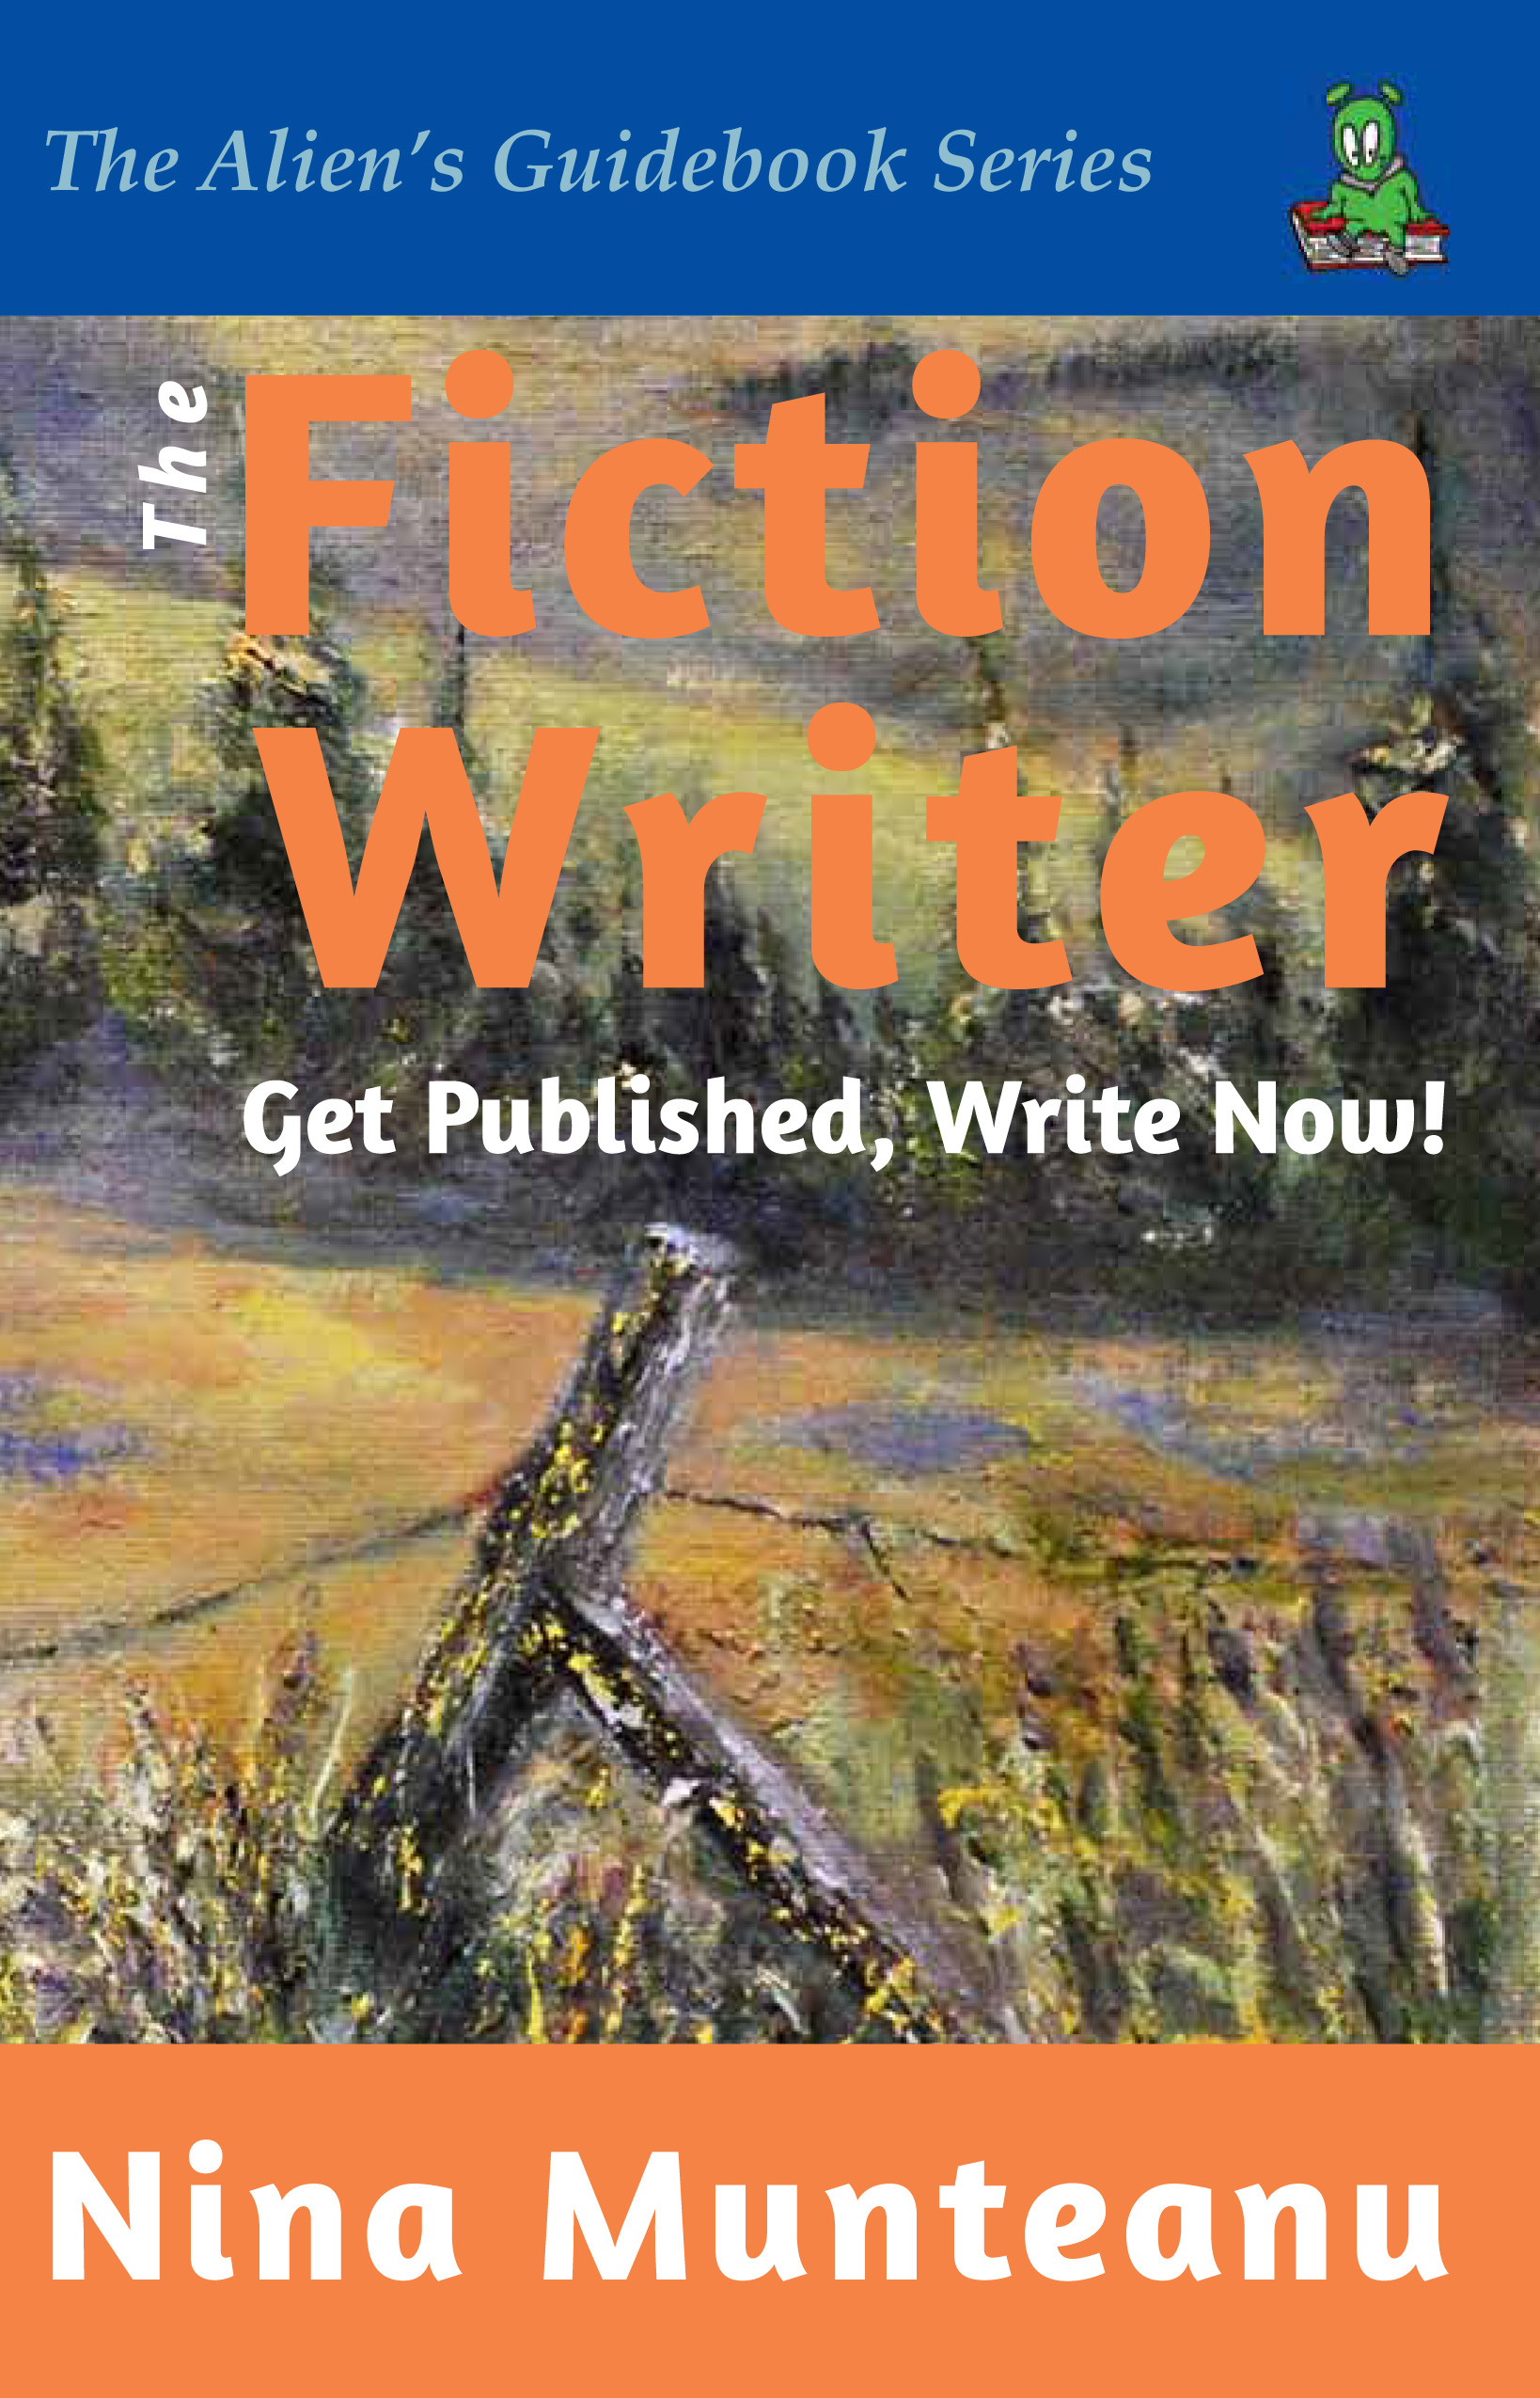 The Fiction Writer: Get Published, Write Now!